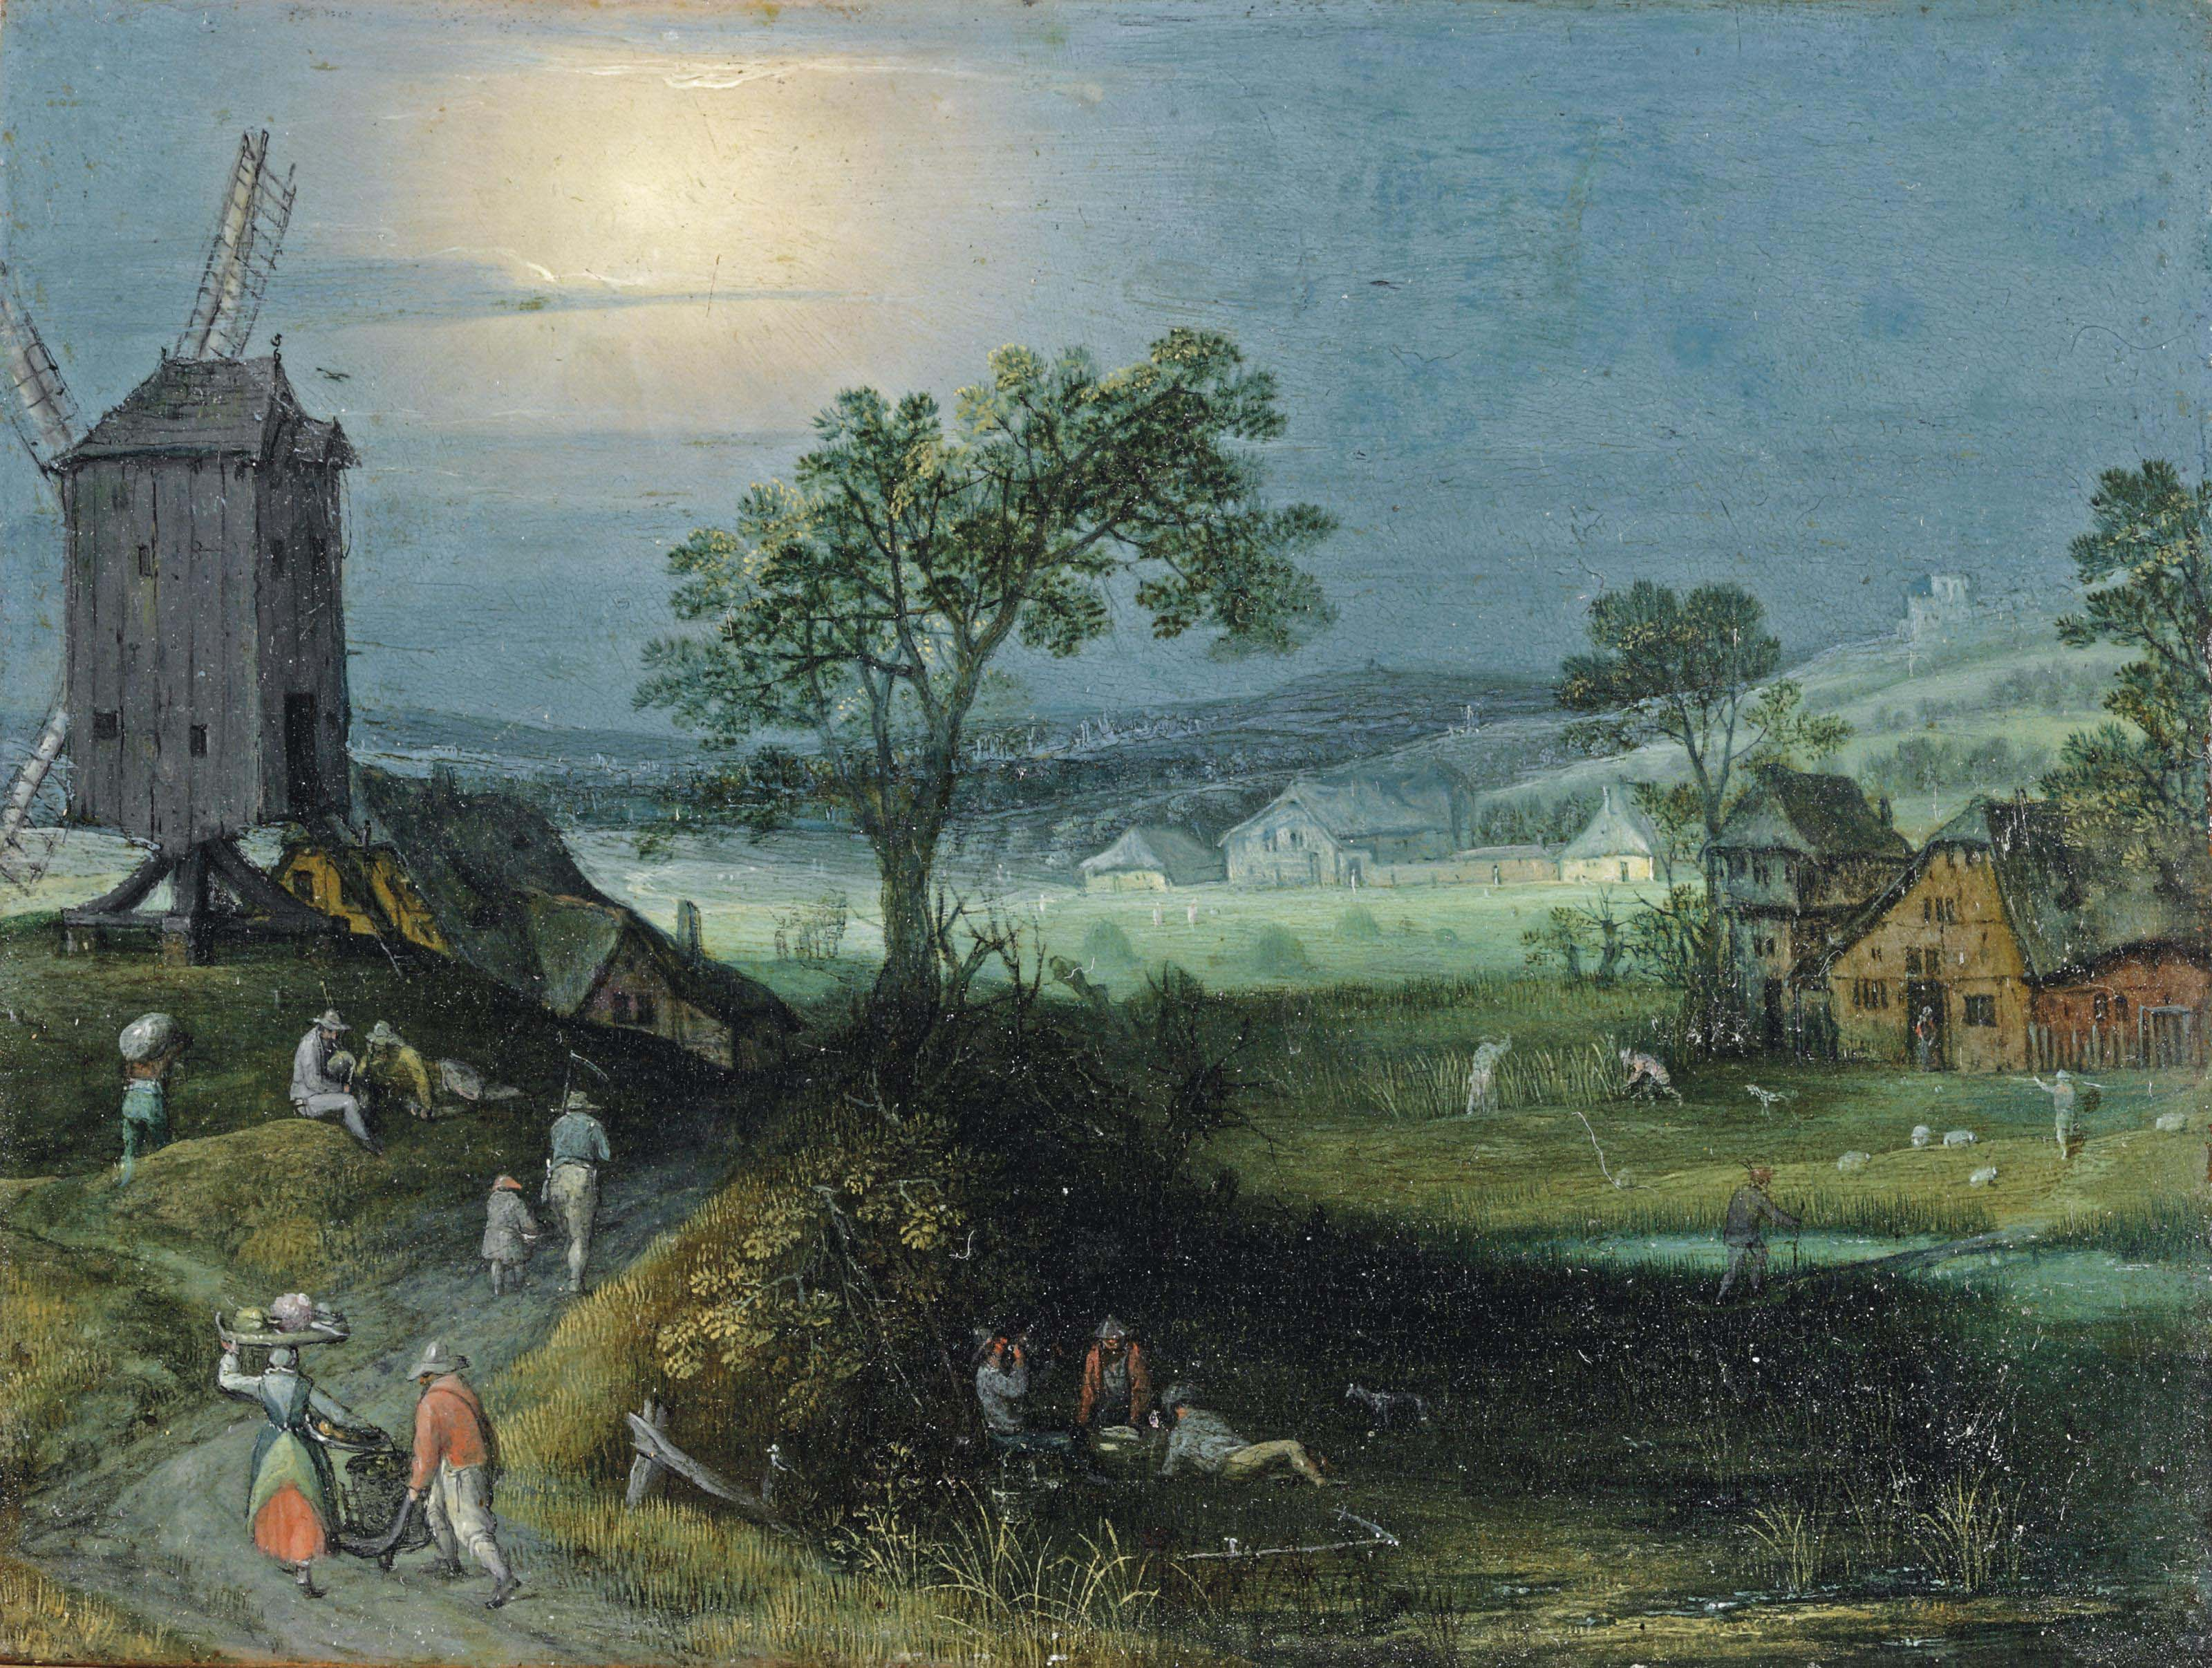 An Allegory of Summer; A hilly landscape with figures returning to a village and figures harvesting in the near distance, a windmill to the left